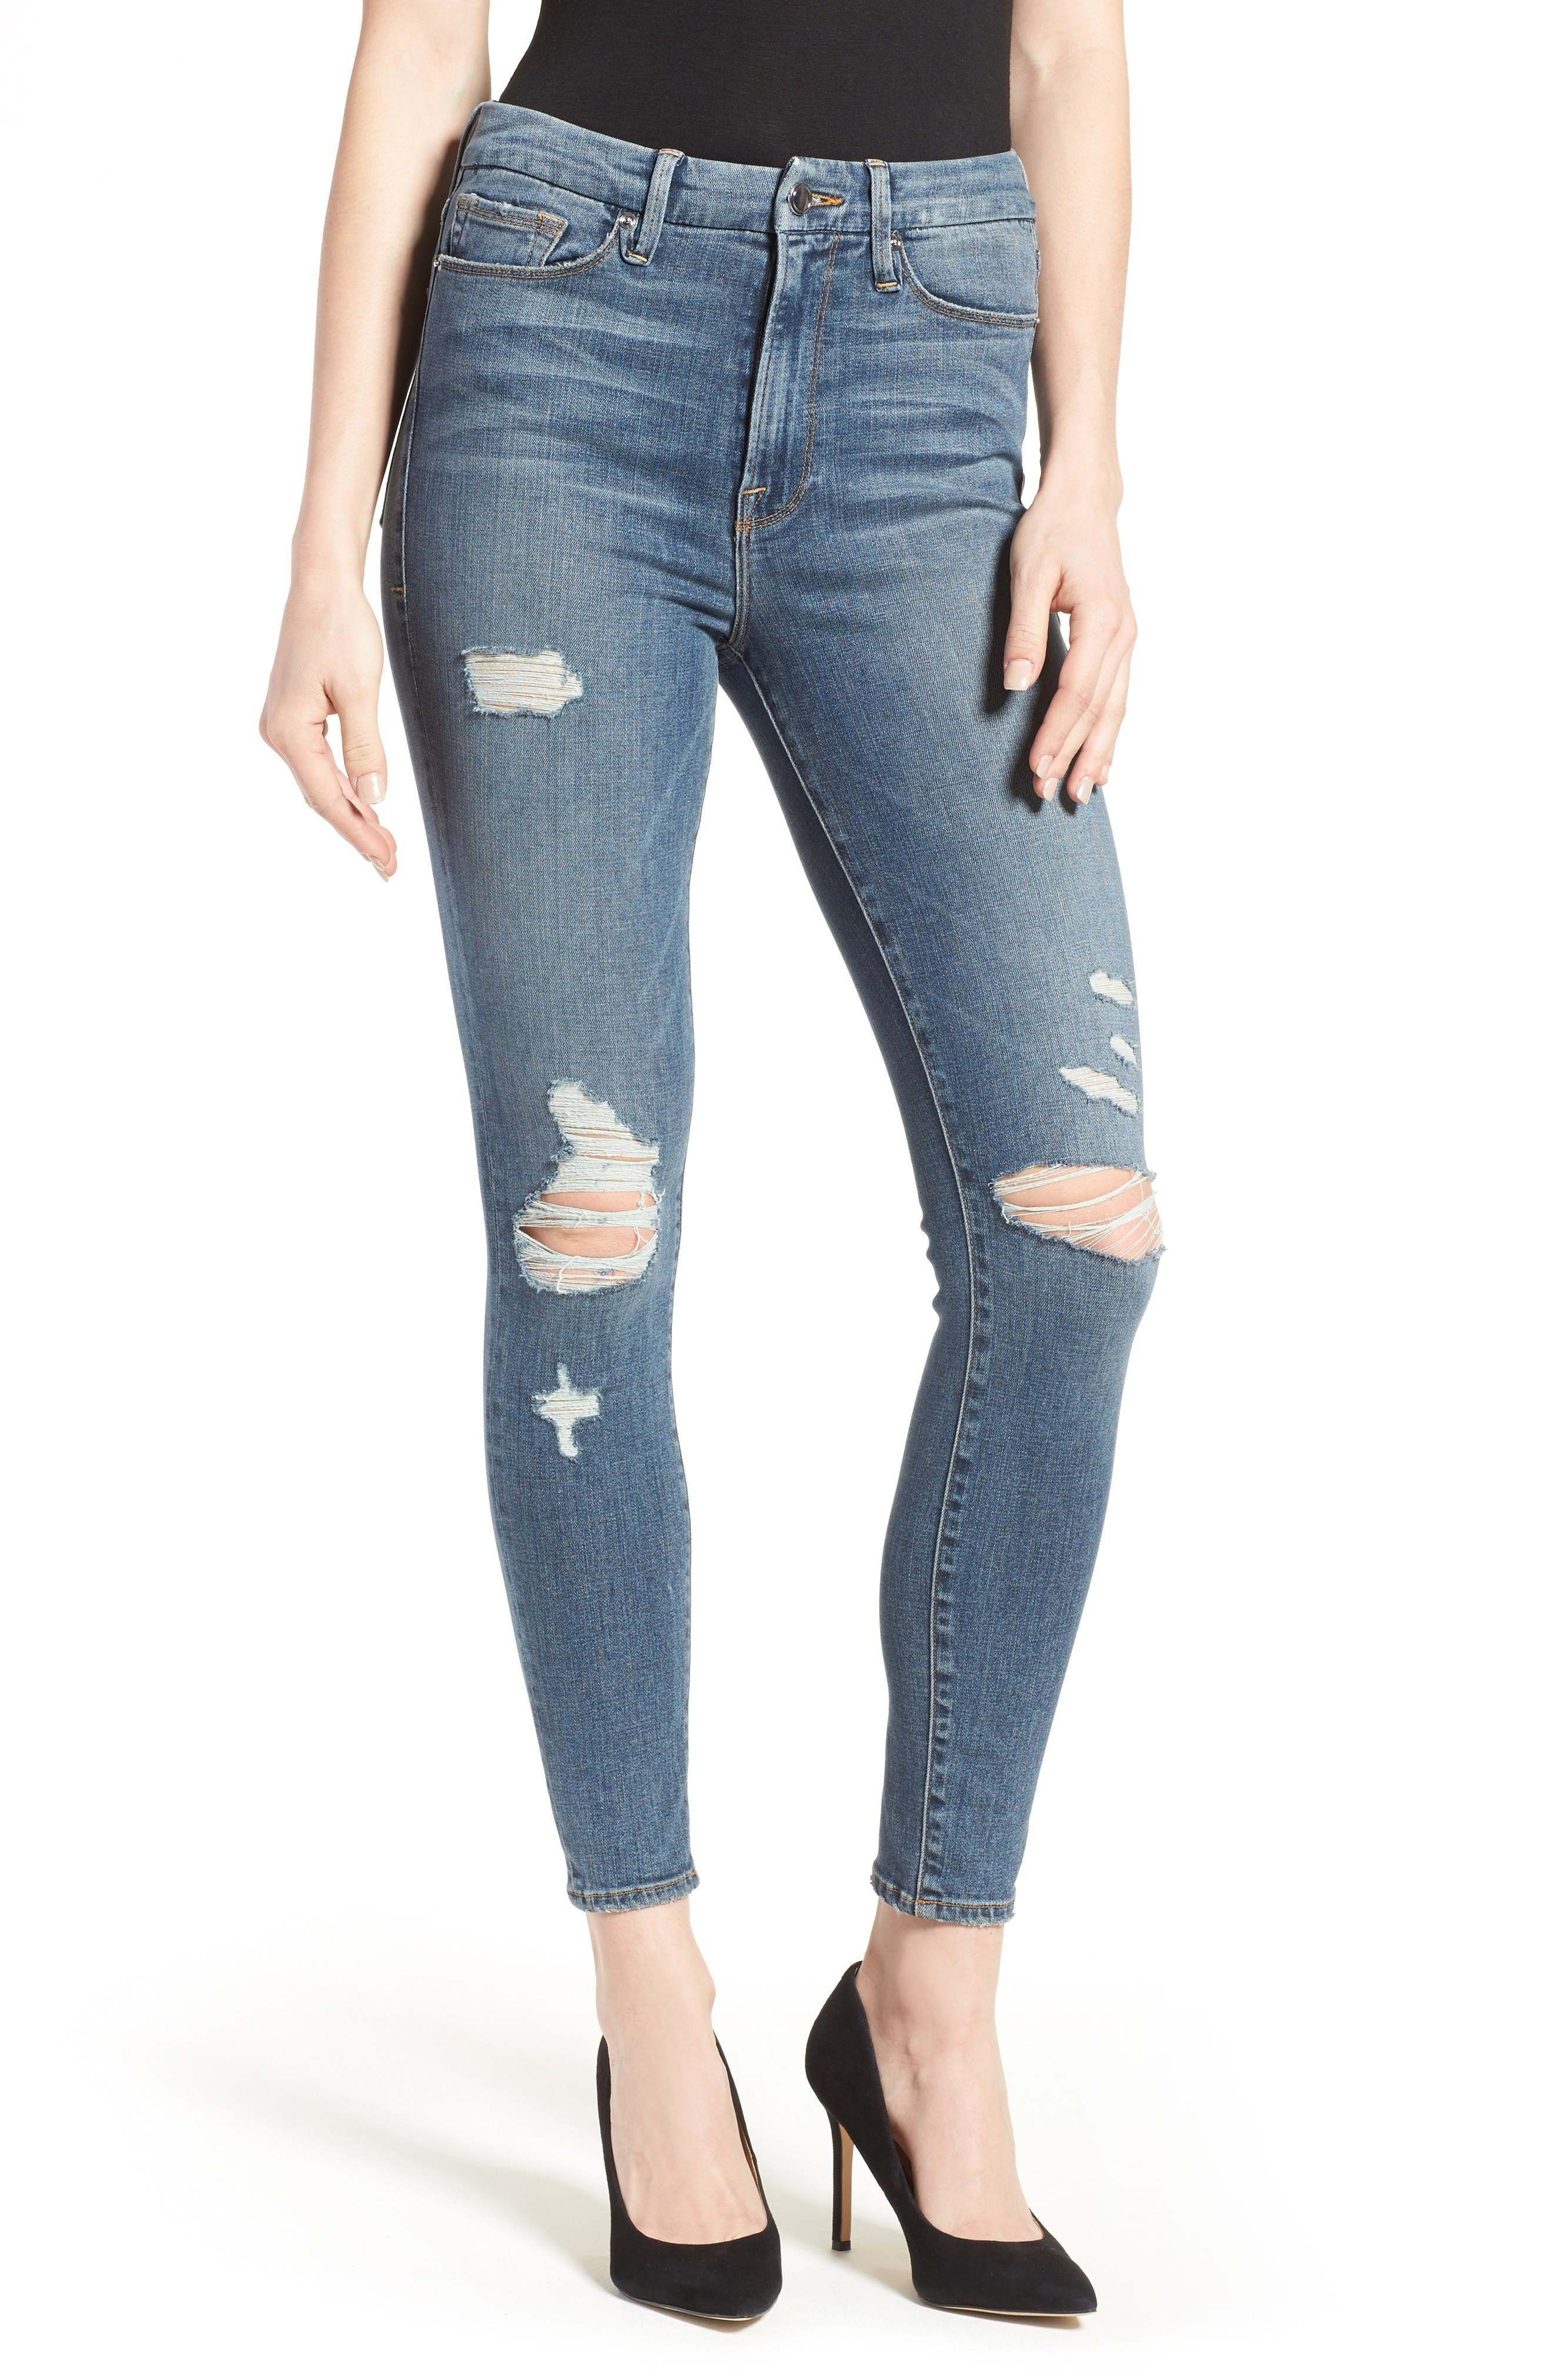 Main Image - Good American Good Waist High Waist Ripped Skinny Jeans (Blue 026) (Extended Sizes)